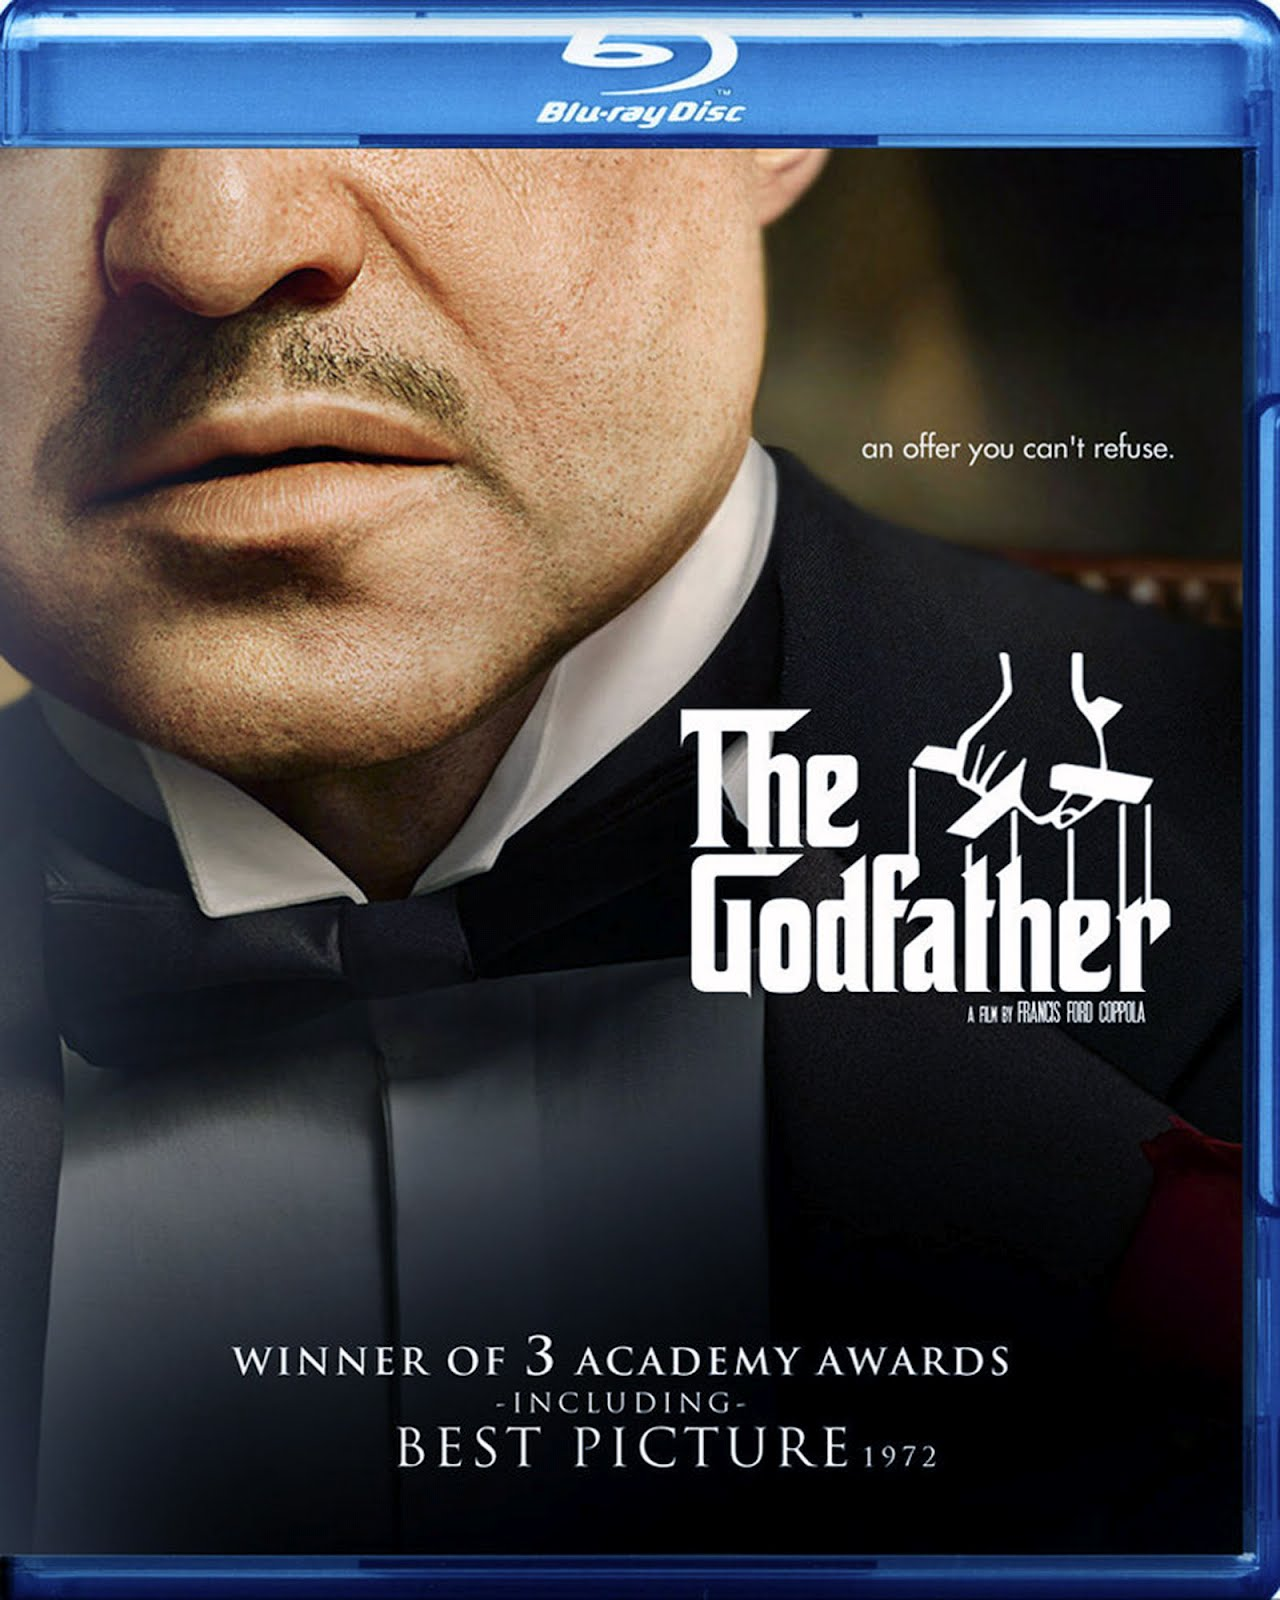 The Godfather Blu-ray DVD Case